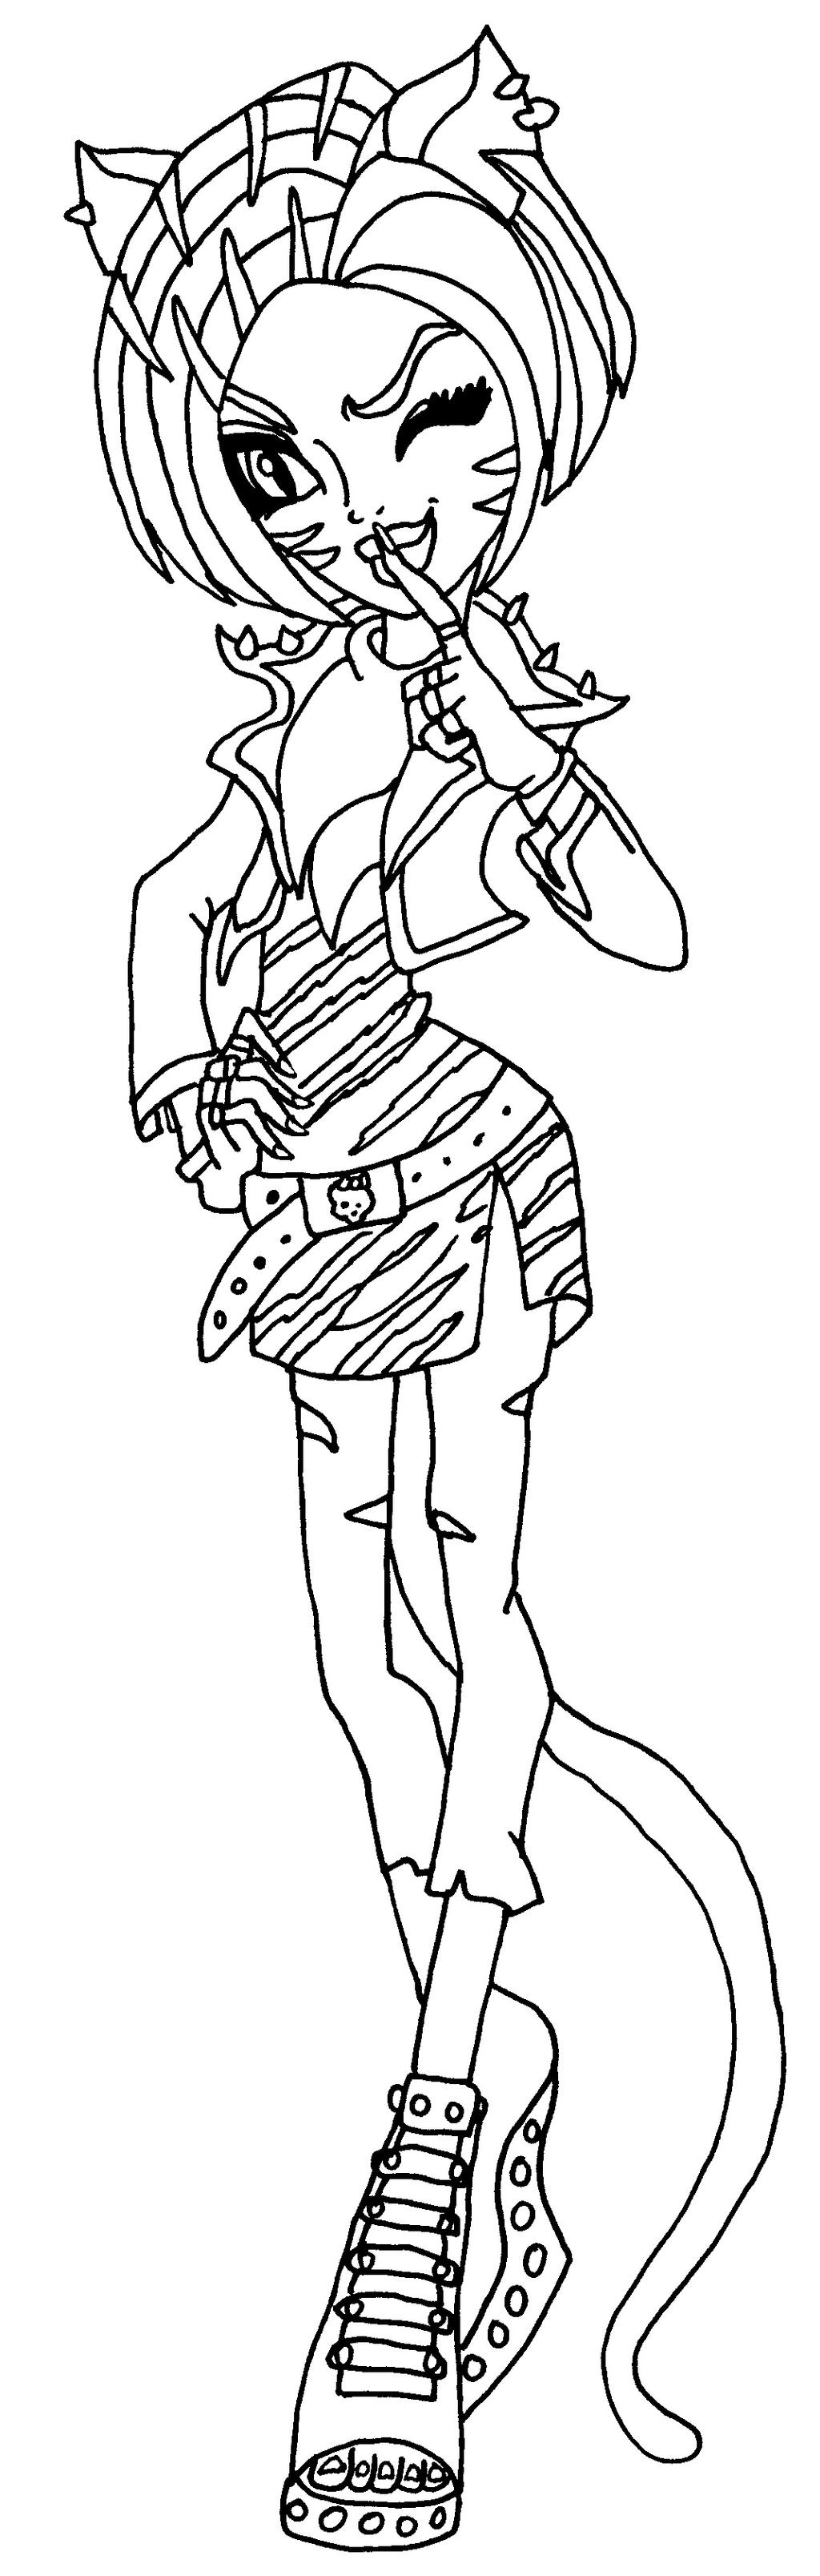 monster high toralei coloring pages toralei stripe from monster high coloring pages line monster pages toralei coloring high